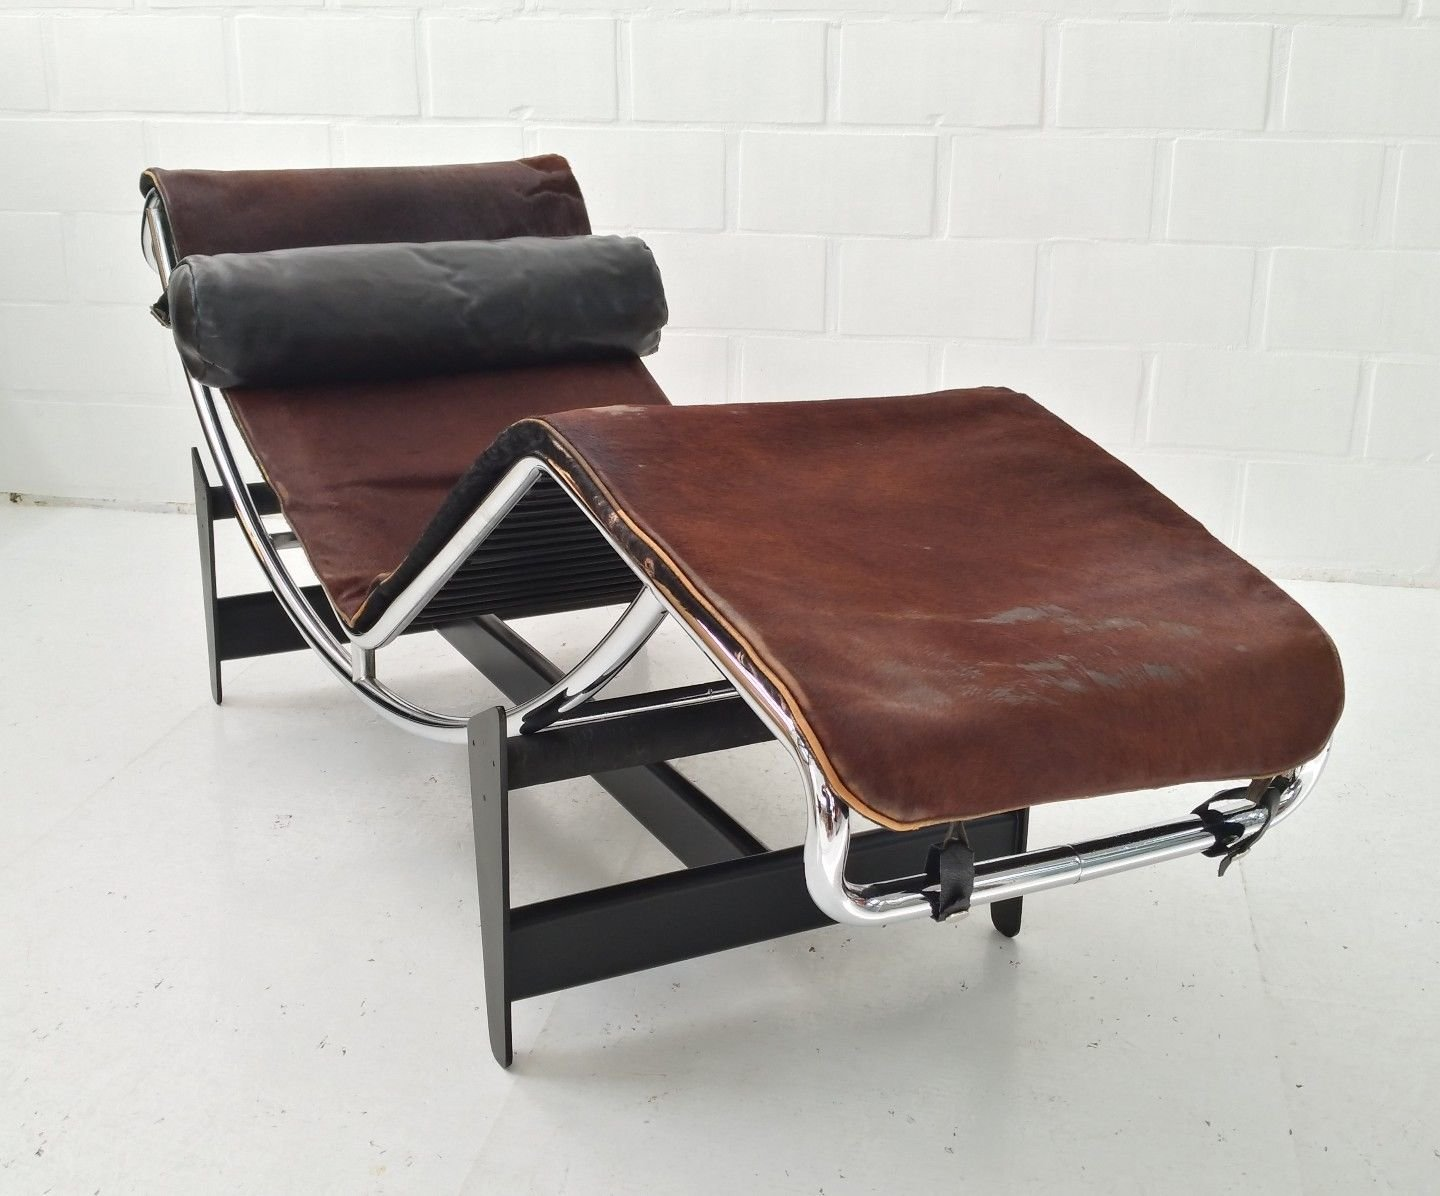 chaise longue early first 550 lc4 par le corbusier charlotte perriand pierre jeanneret pour. Black Bedroom Furniture Sets. Home Design Ideas